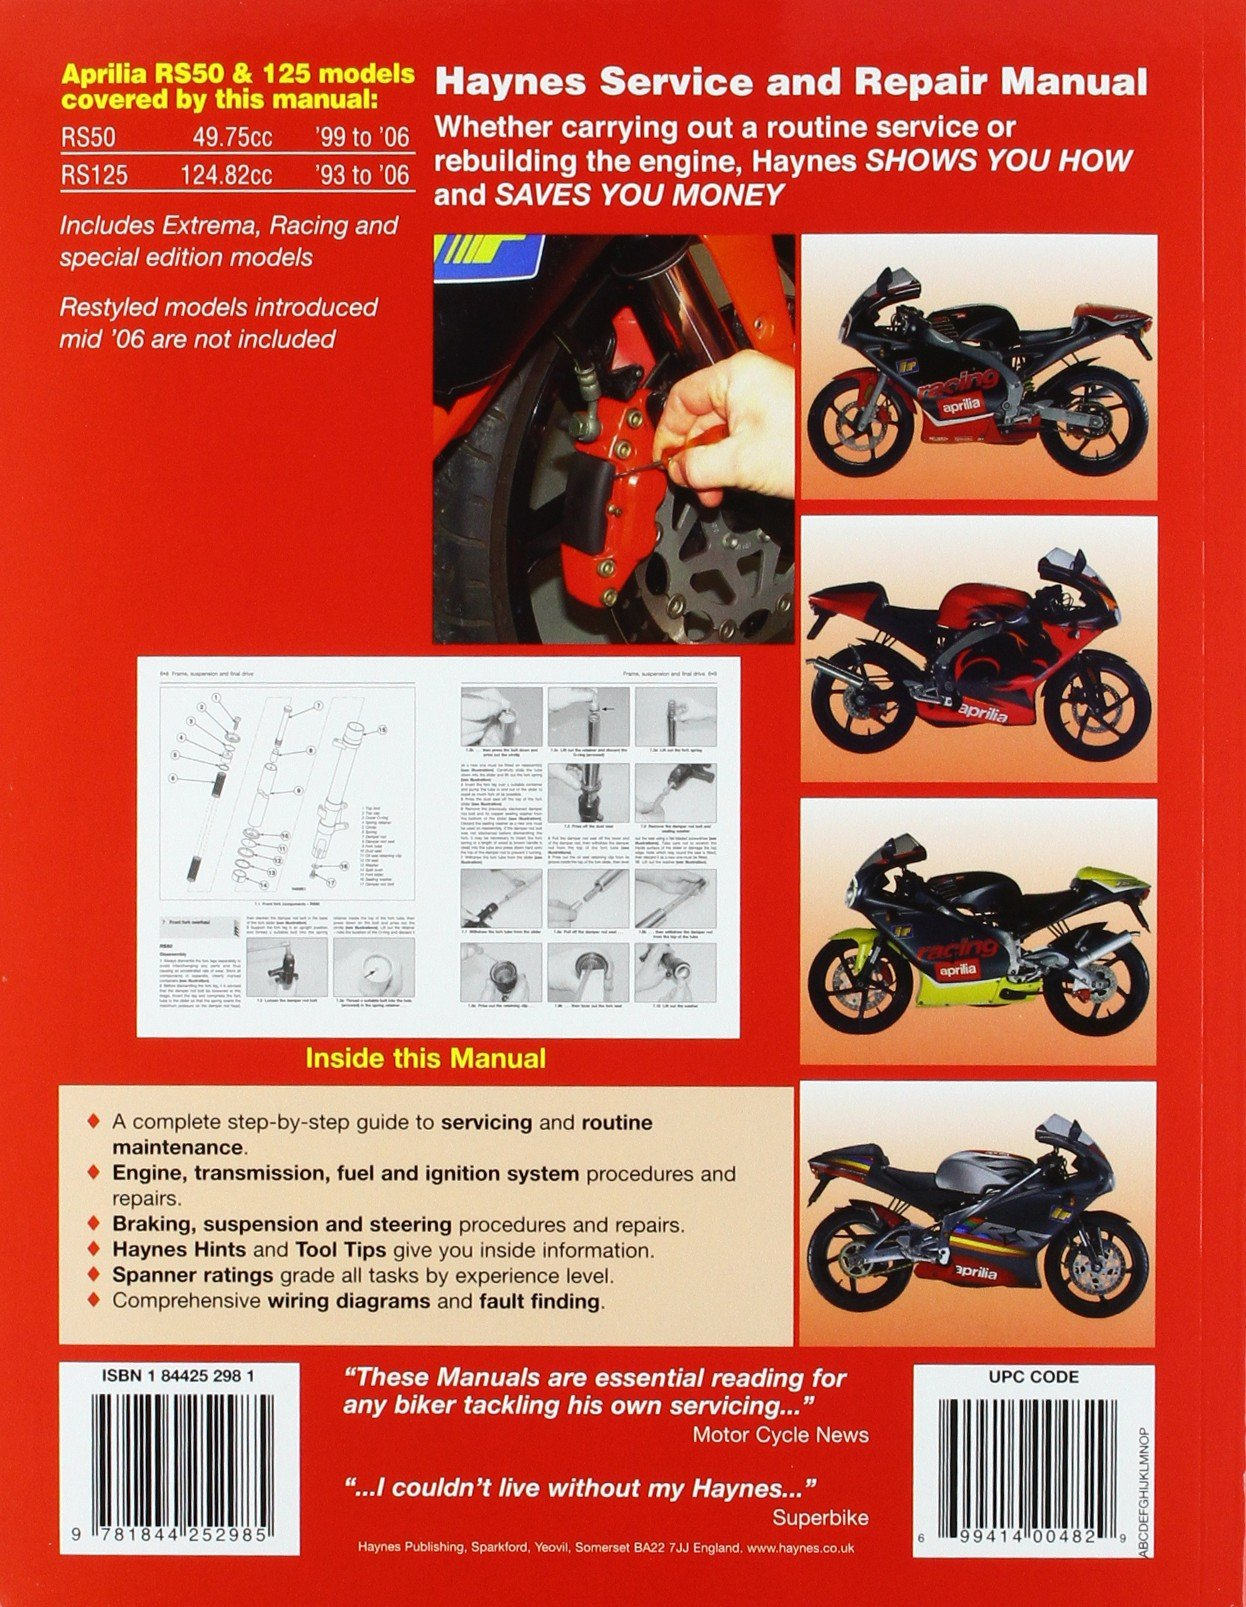 Aprilia Rs50 1999 2006 Rs125 1993 To Haynes Engine Diagrams Service And Repair Manuals Anon 9781844252985 Books